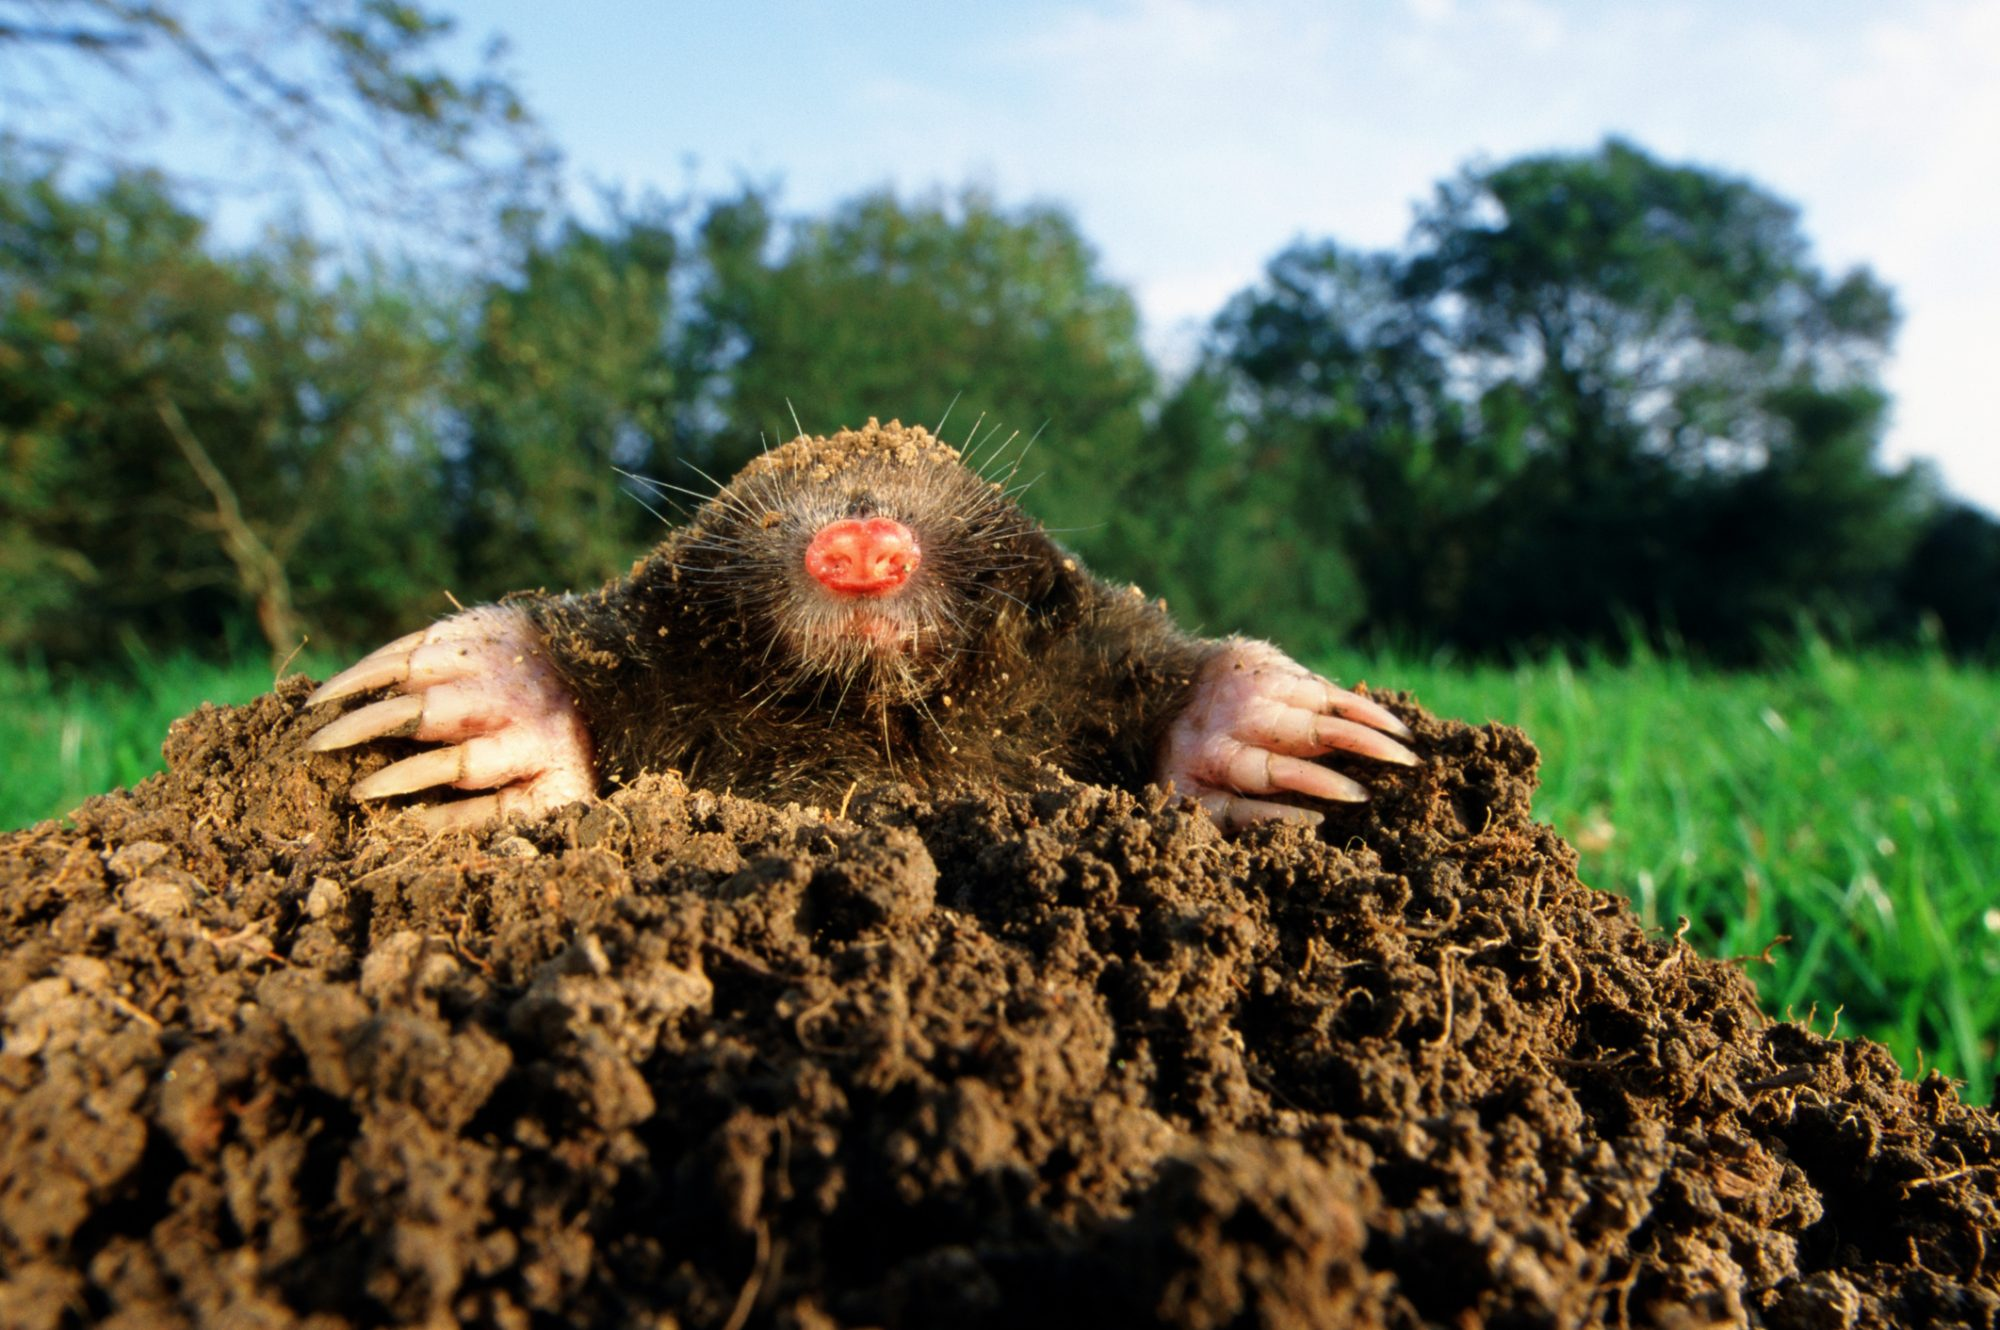 Mole Emerging from Mole Heap